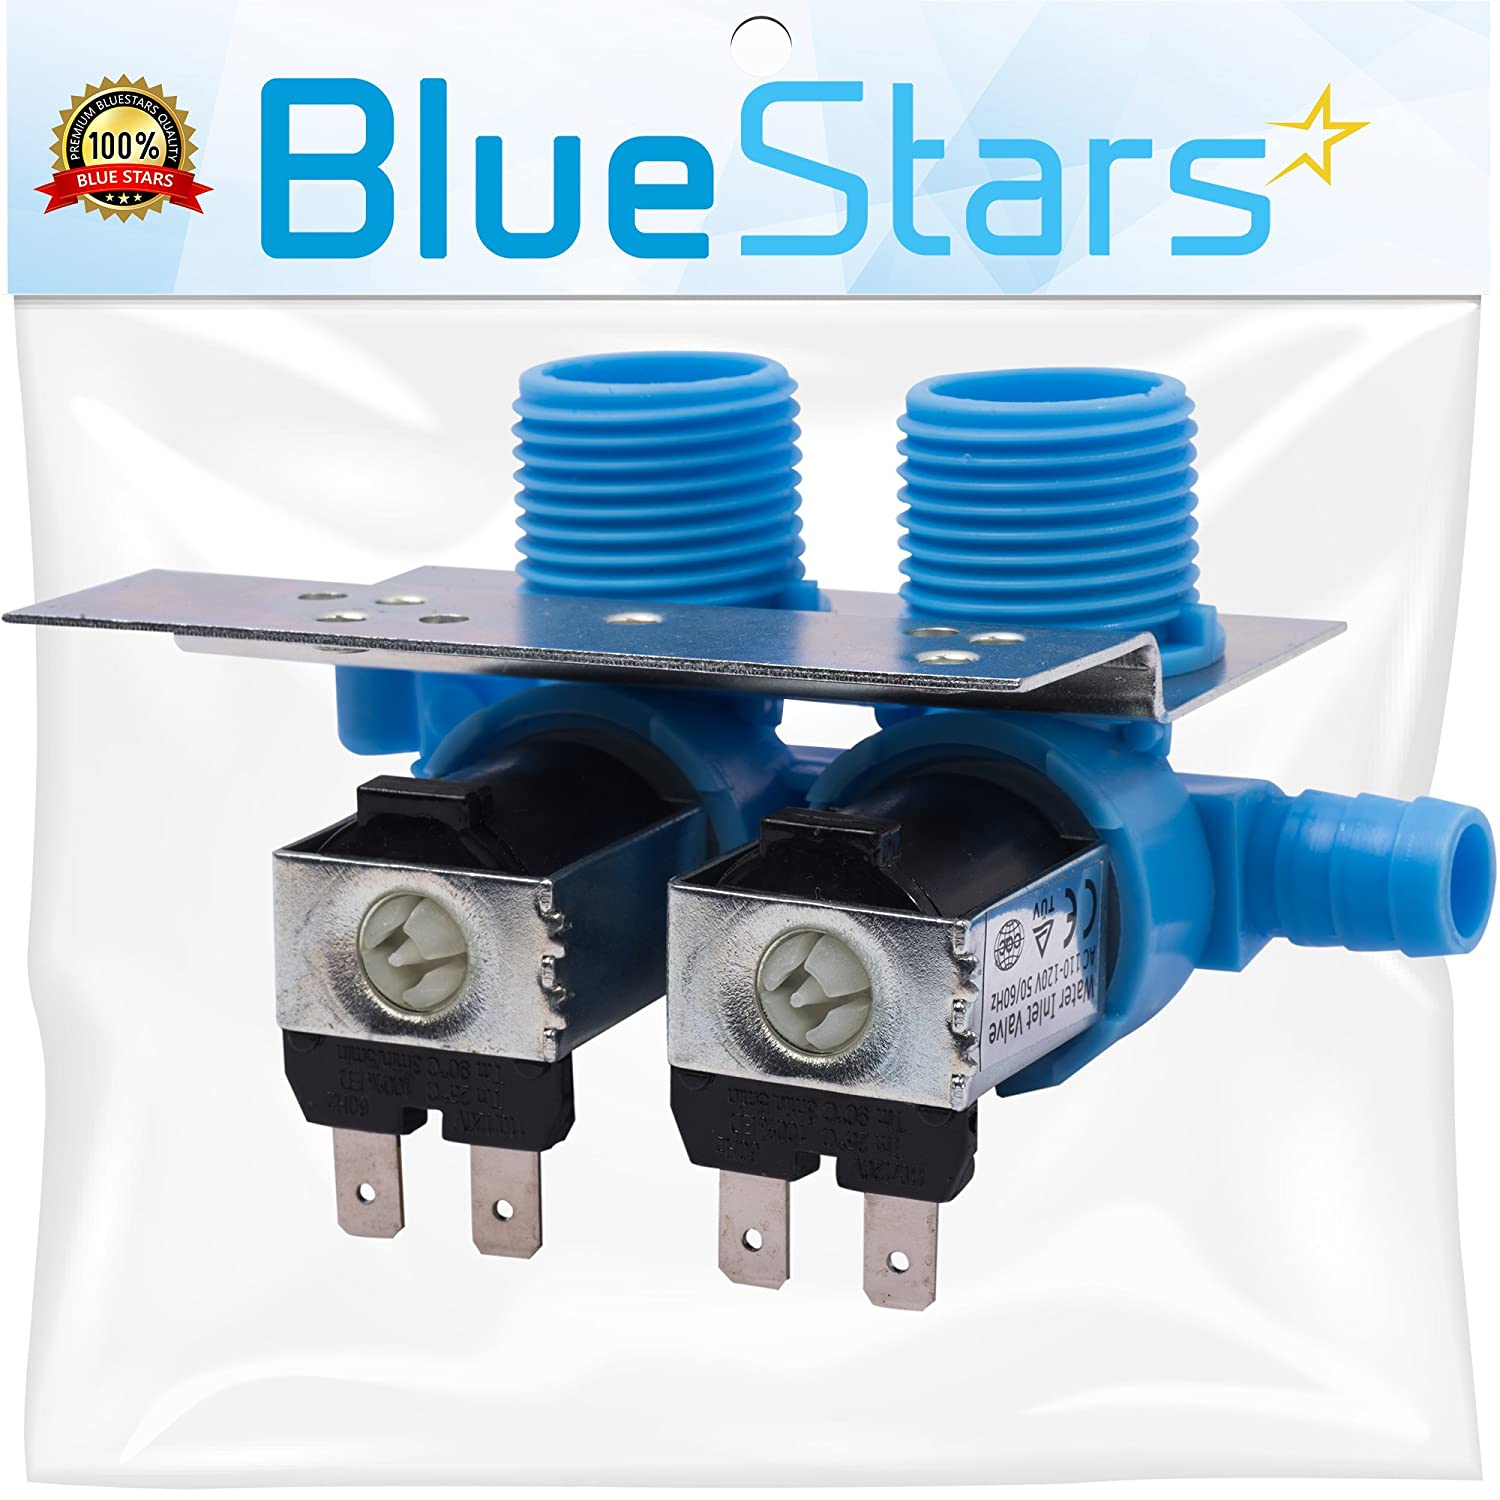 Ultra Durable 285805 Washer Water Inlet Valve with Mounting Bracket by Blue Stars - Exact Fit for Whirlpool Kenmore Kitchenaid Washer - Replaces 292197 3349451 3354565